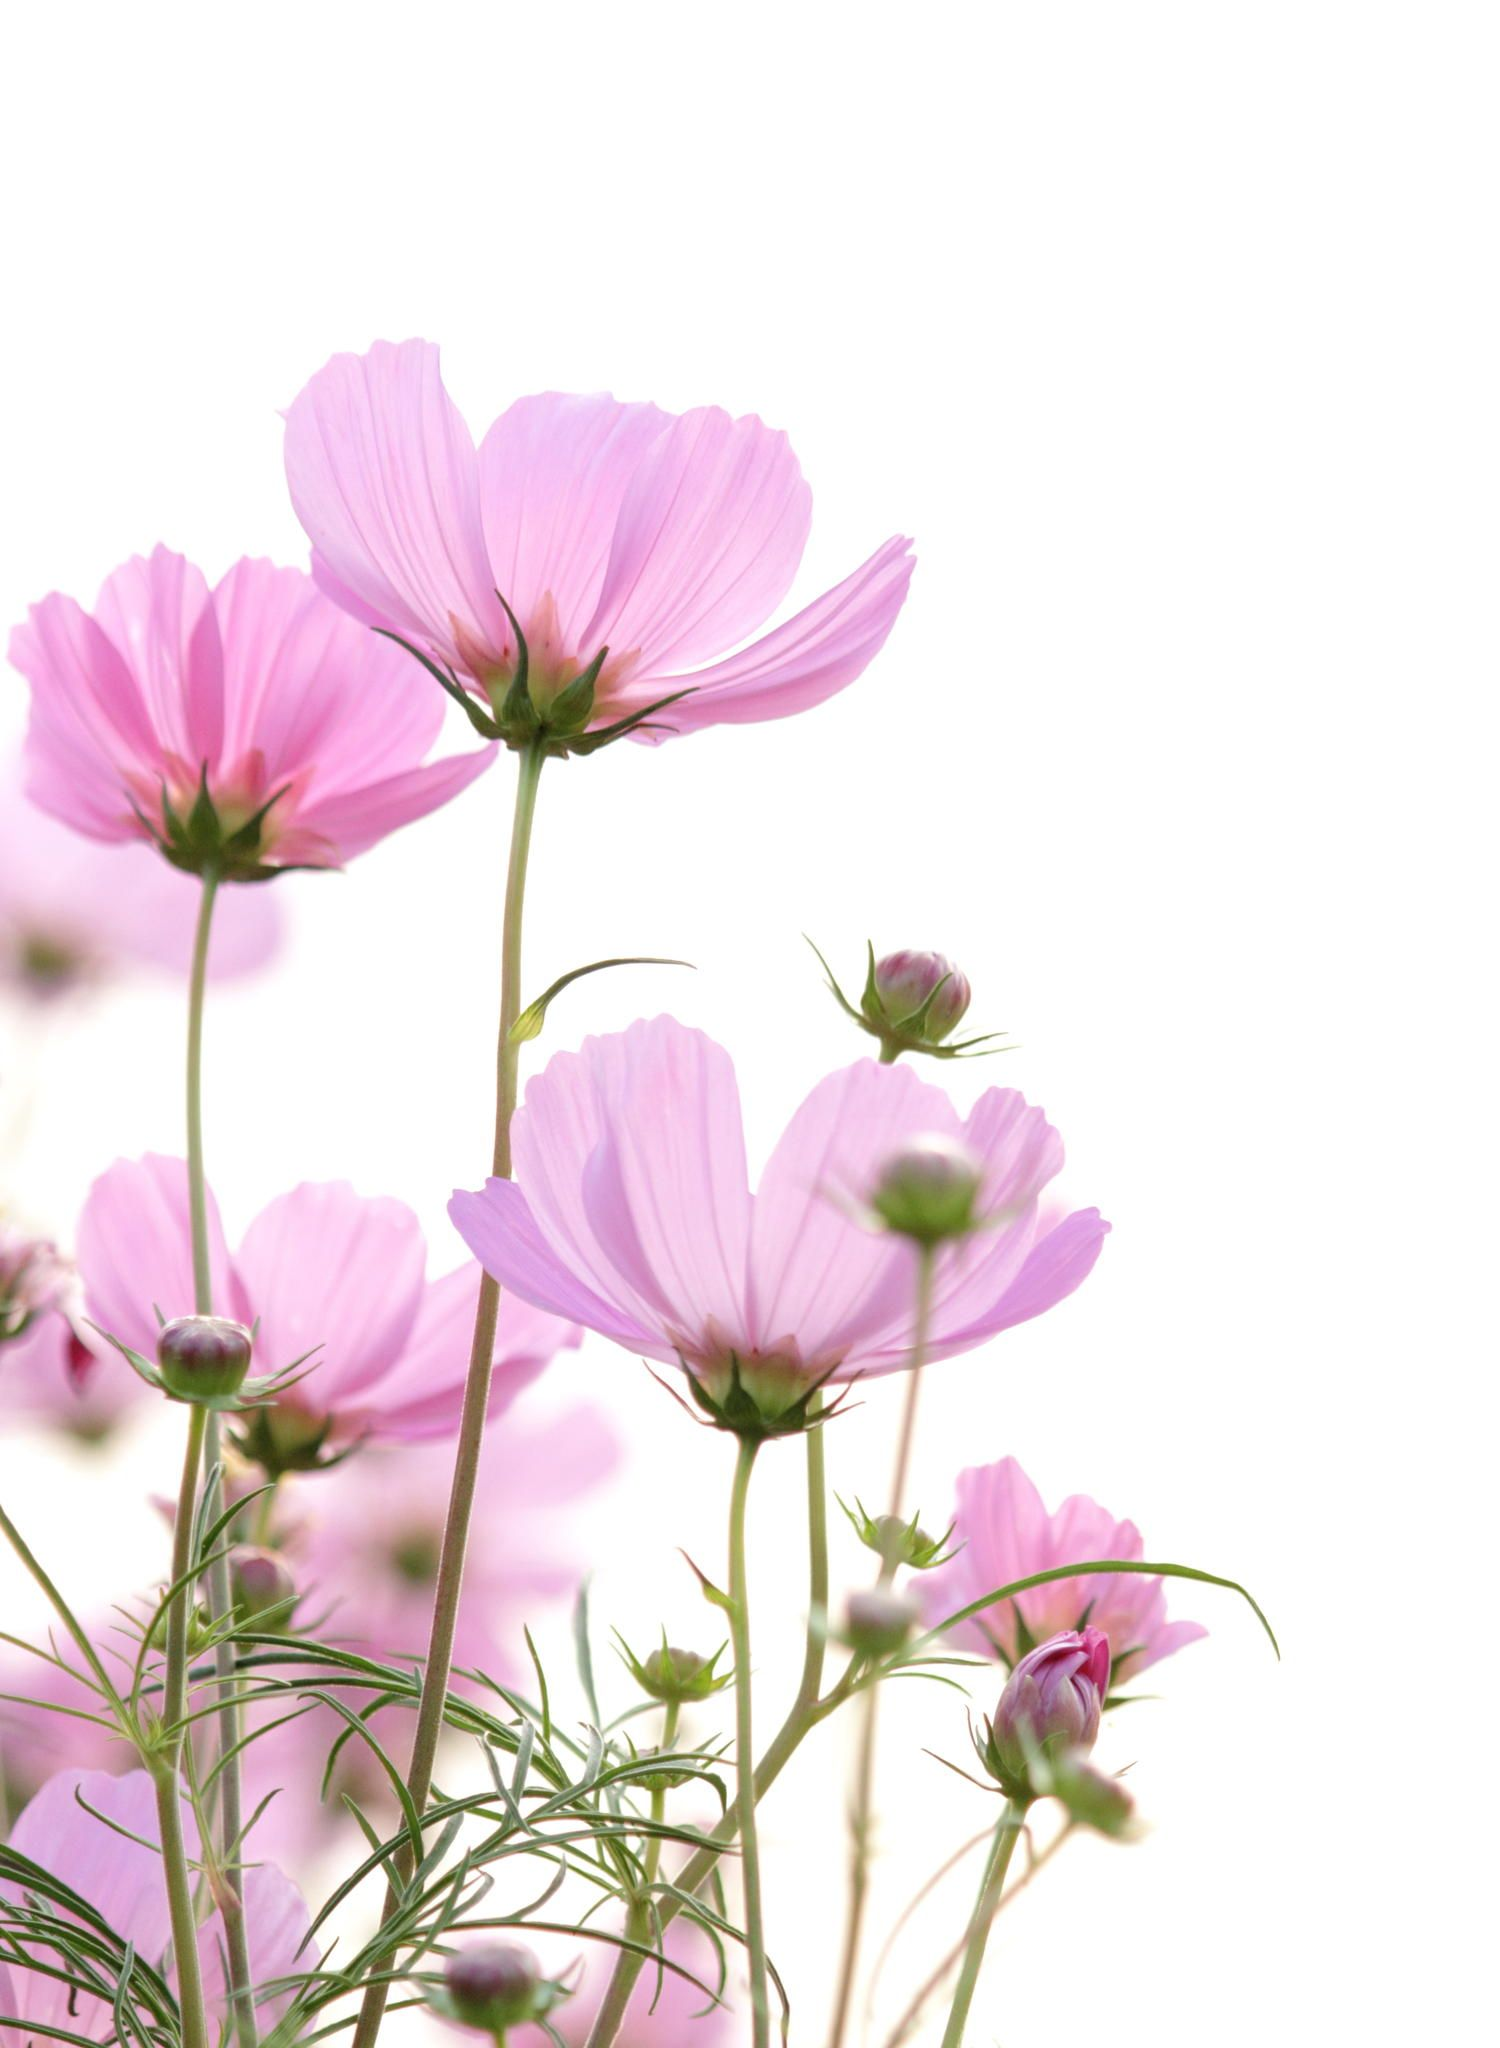 Cosmos Flowers On White Background Flowers Photography Wallpaper Vintage Flower Backgrounds Flower Background Wallpaper